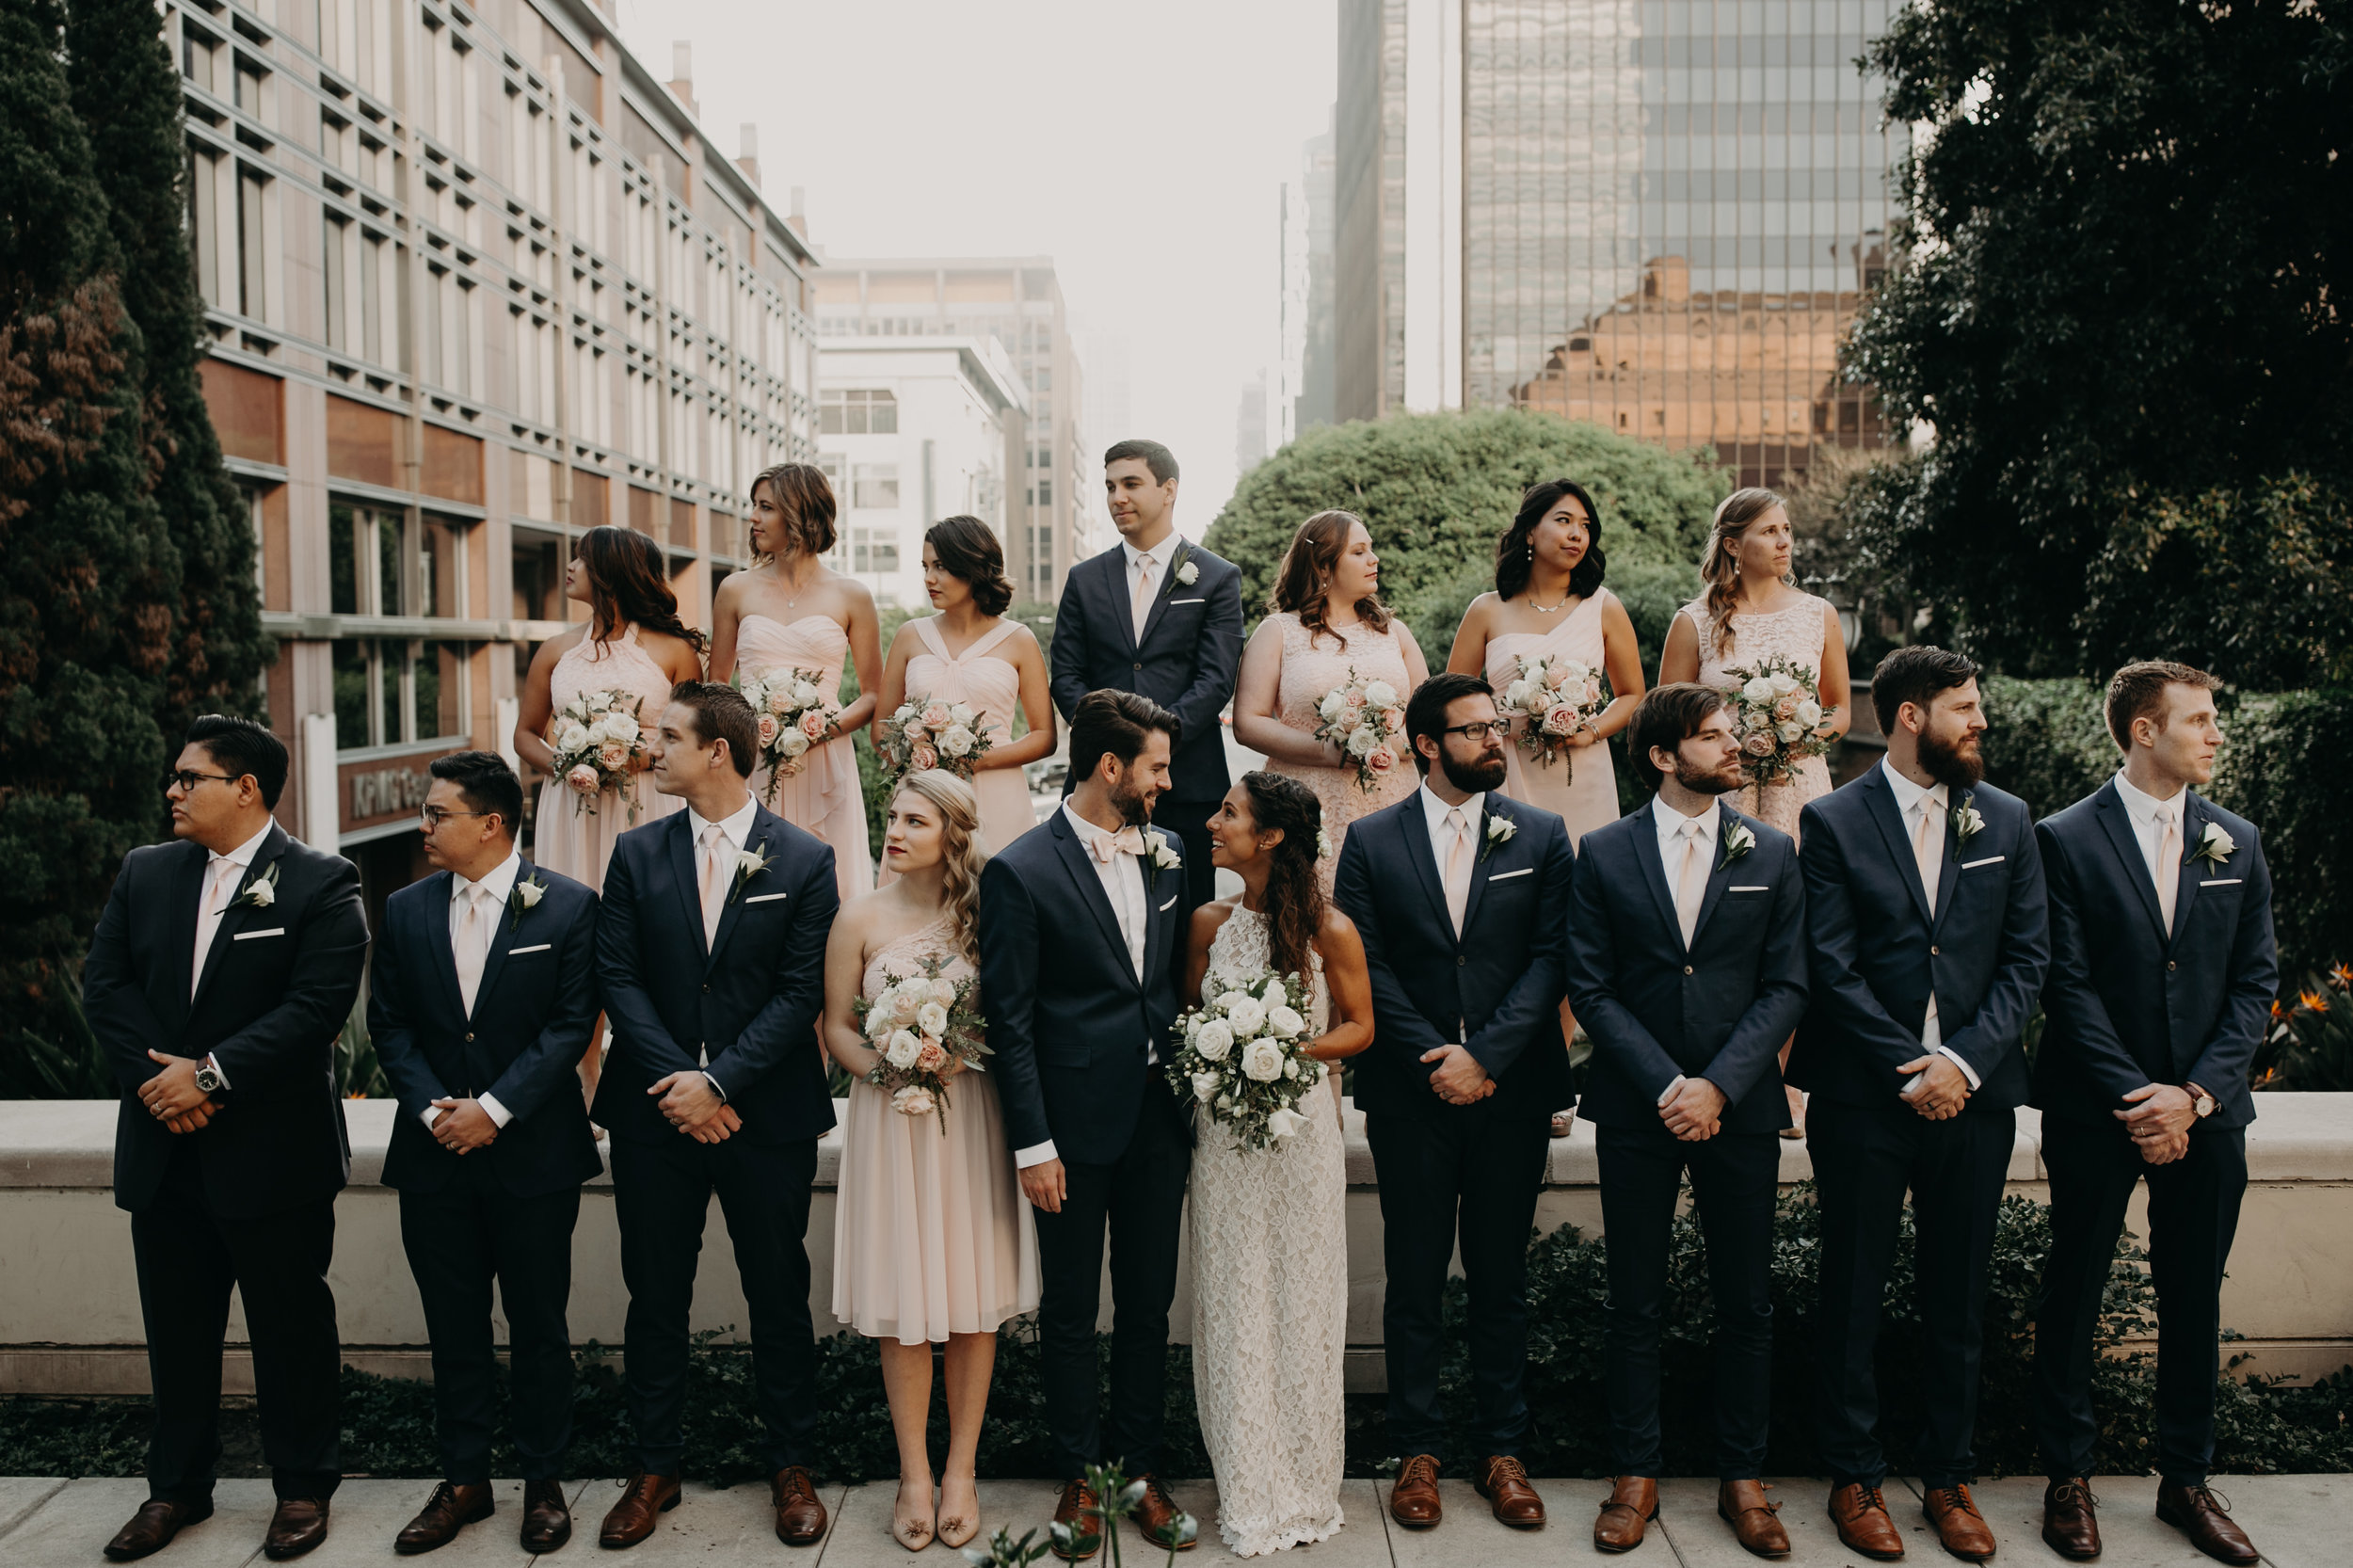 Los Angeles Library Wedding Jonathan & Amelia  Emily Magers Photography-443.jpg